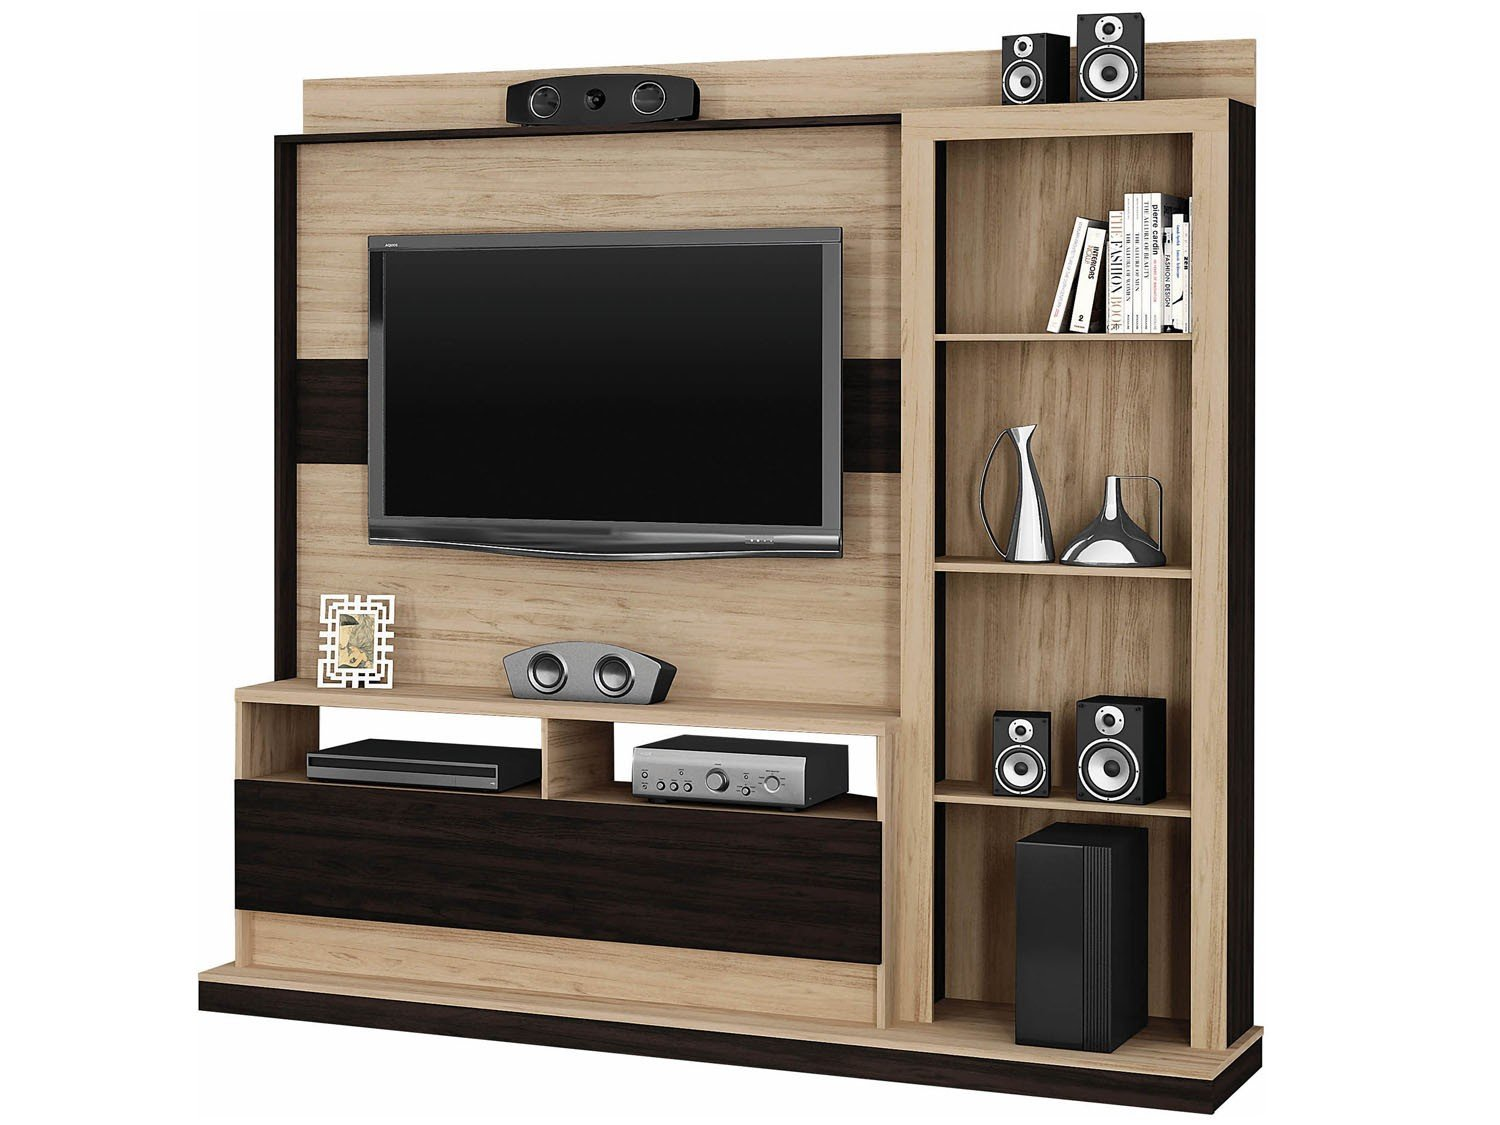 Estante para tv home theater montevid o rack bancada - Estantes para pared ...